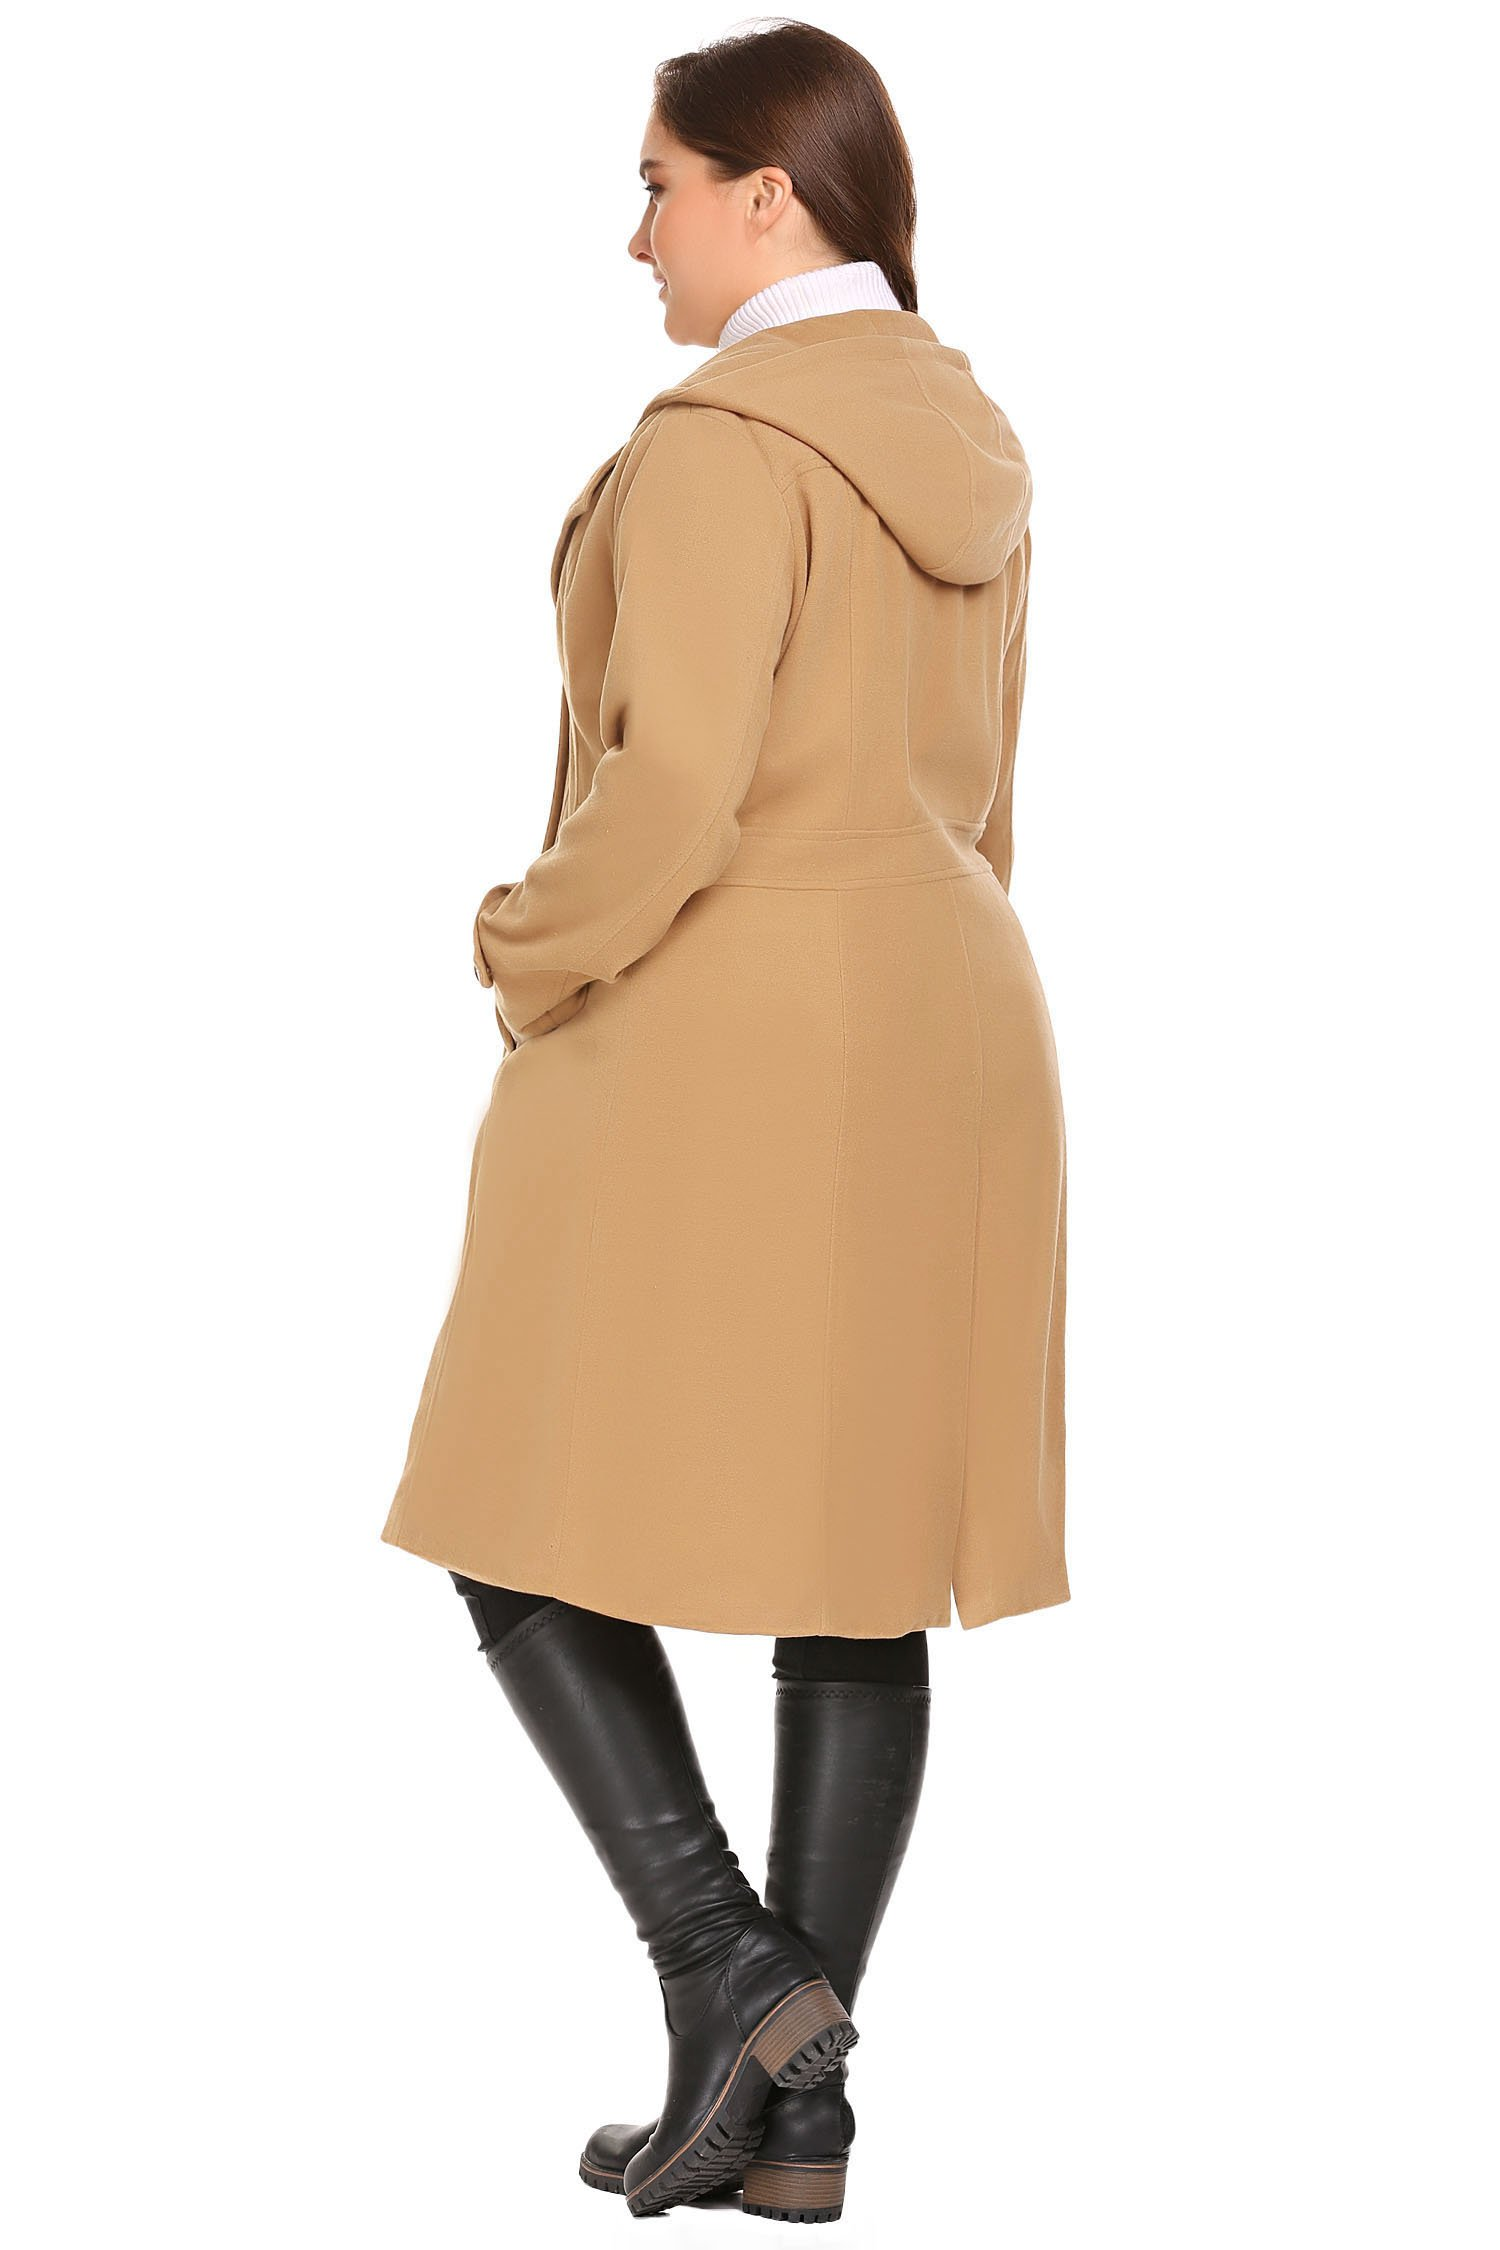 Zeagoo Women Plus Size Double Breasted Wool Elegant Long Lined Lightweight Trench Coat (16W-24W) by Zeagoo (Image #7)